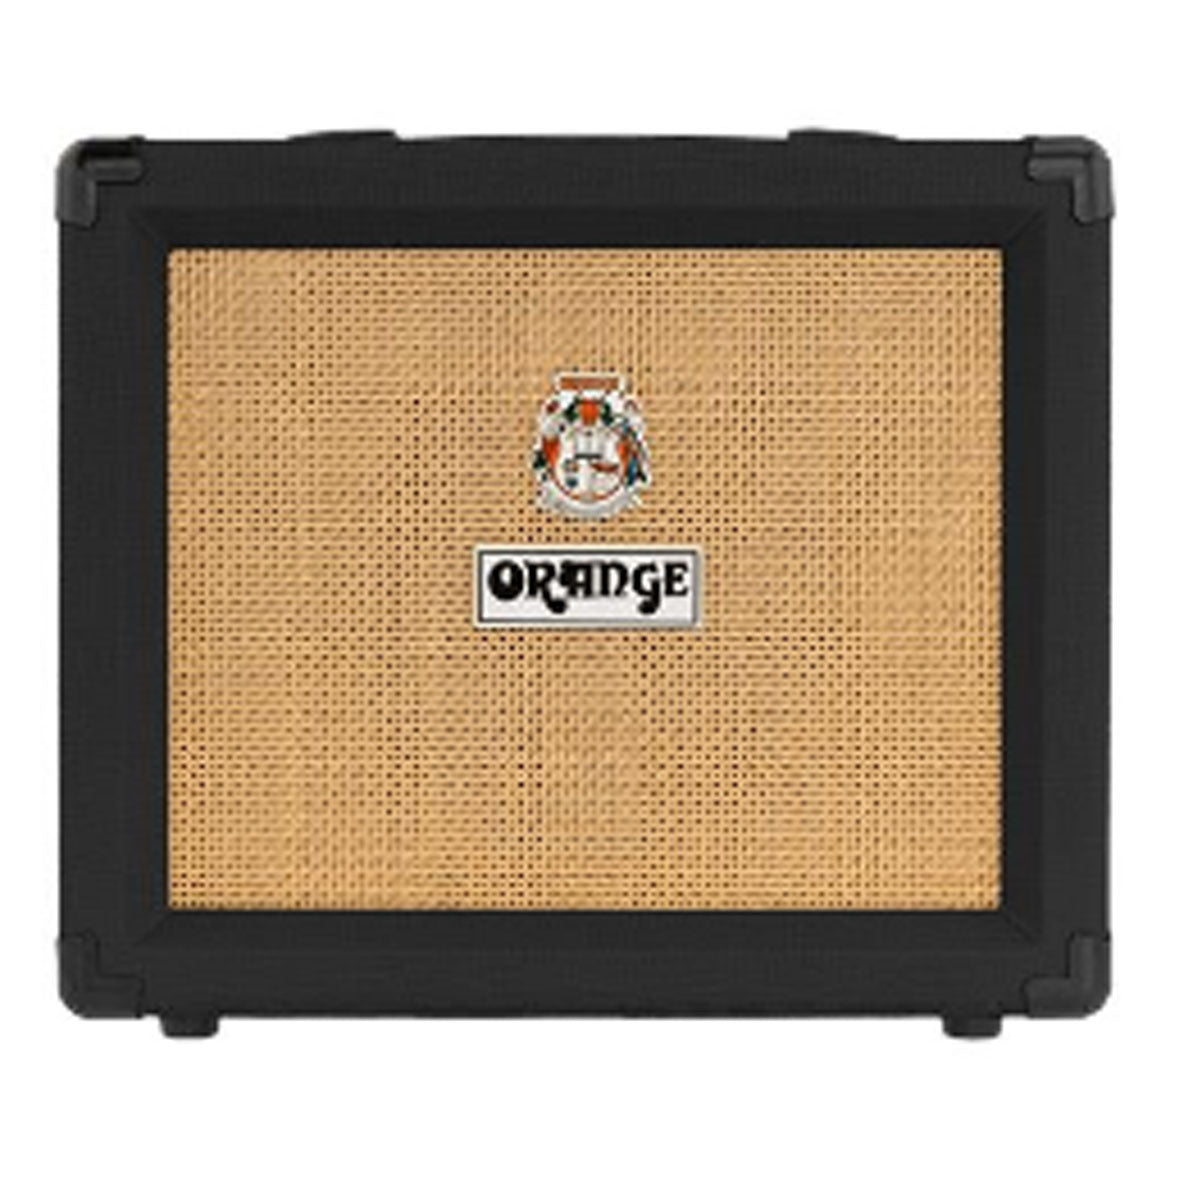 Orange Crush 20 Guitar Amplifier 20w Combo Amp - Black